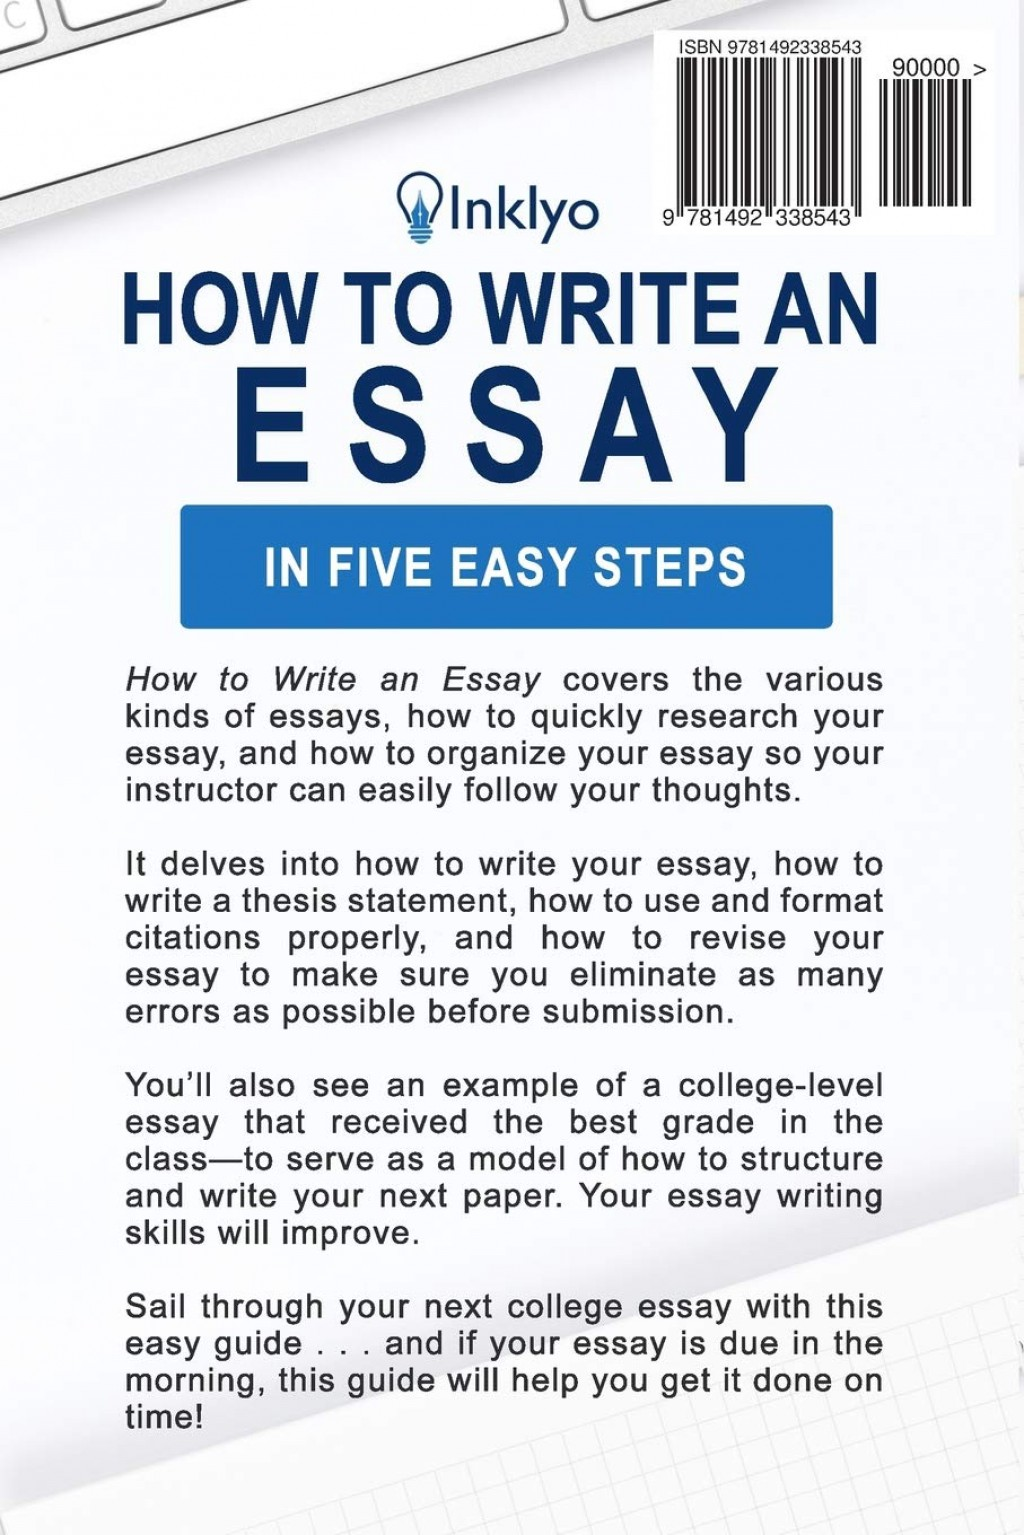 008 Essay Example How Write An Unbelievable To Ppt Tips On For A Scholarship Introduction With Thesis Statement Large